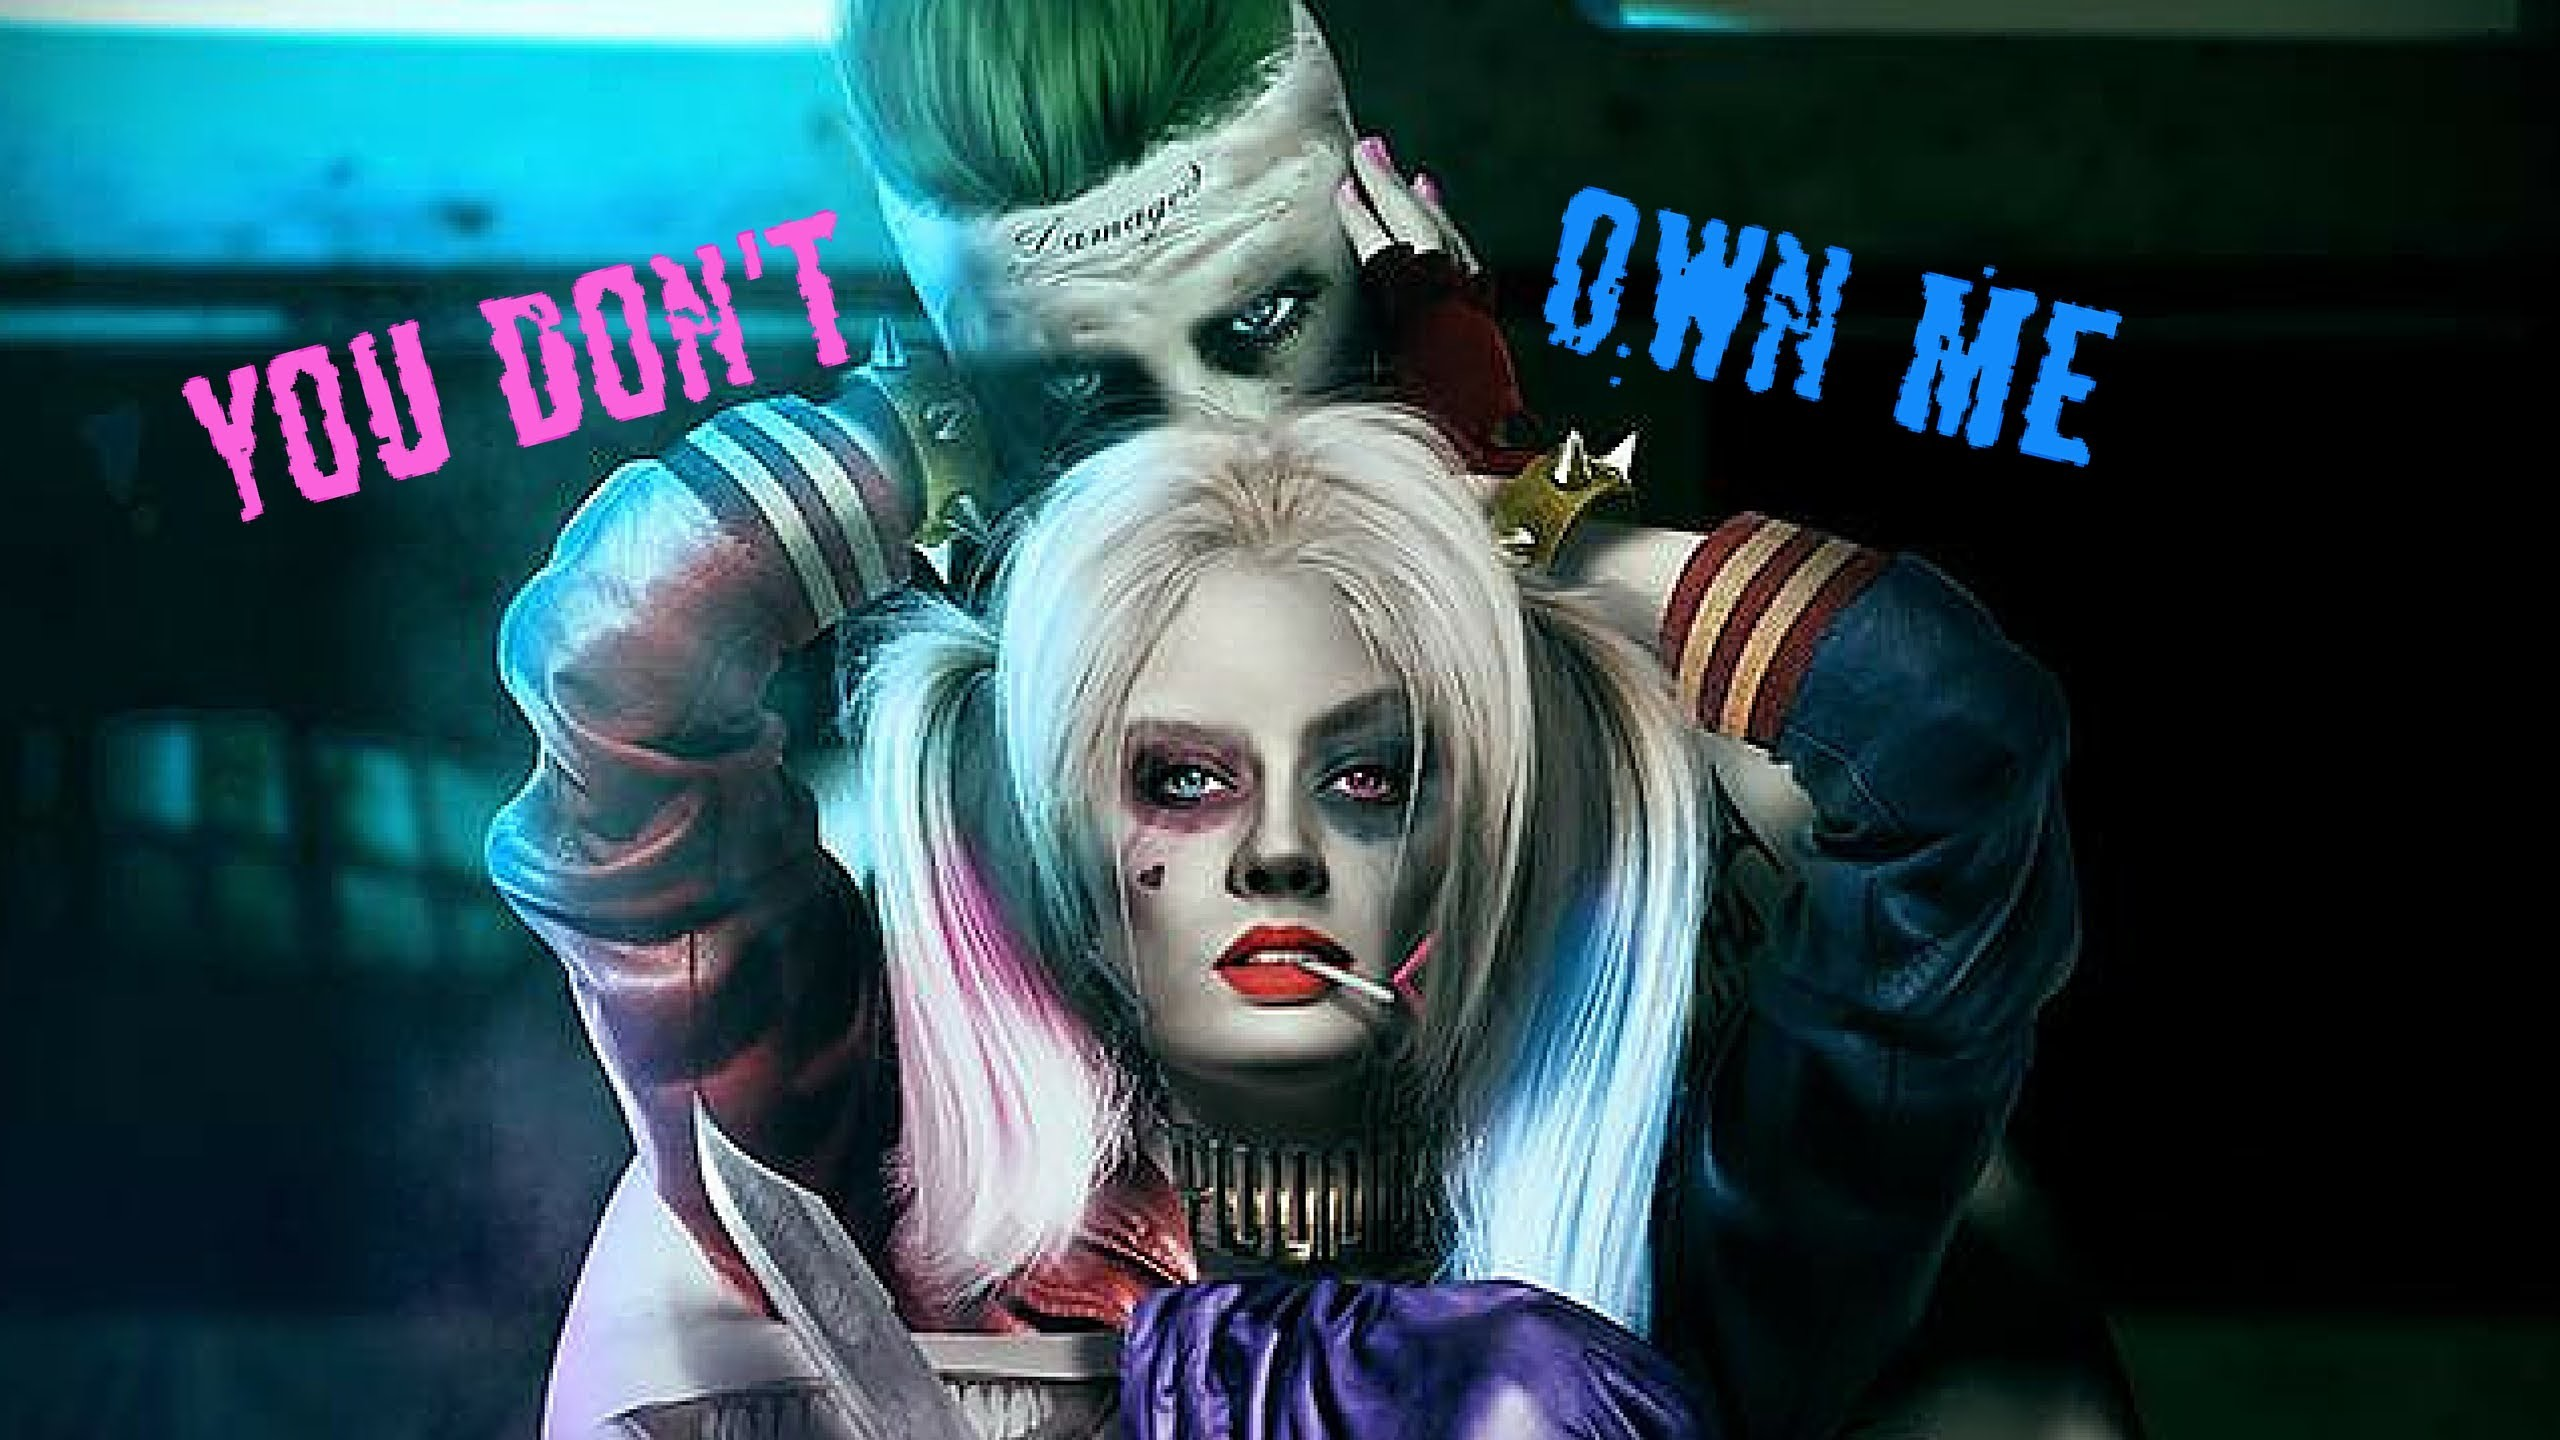 Quote Wallpaper For Sony Xperia Harley Quinn Live Wallpaper 72 Images